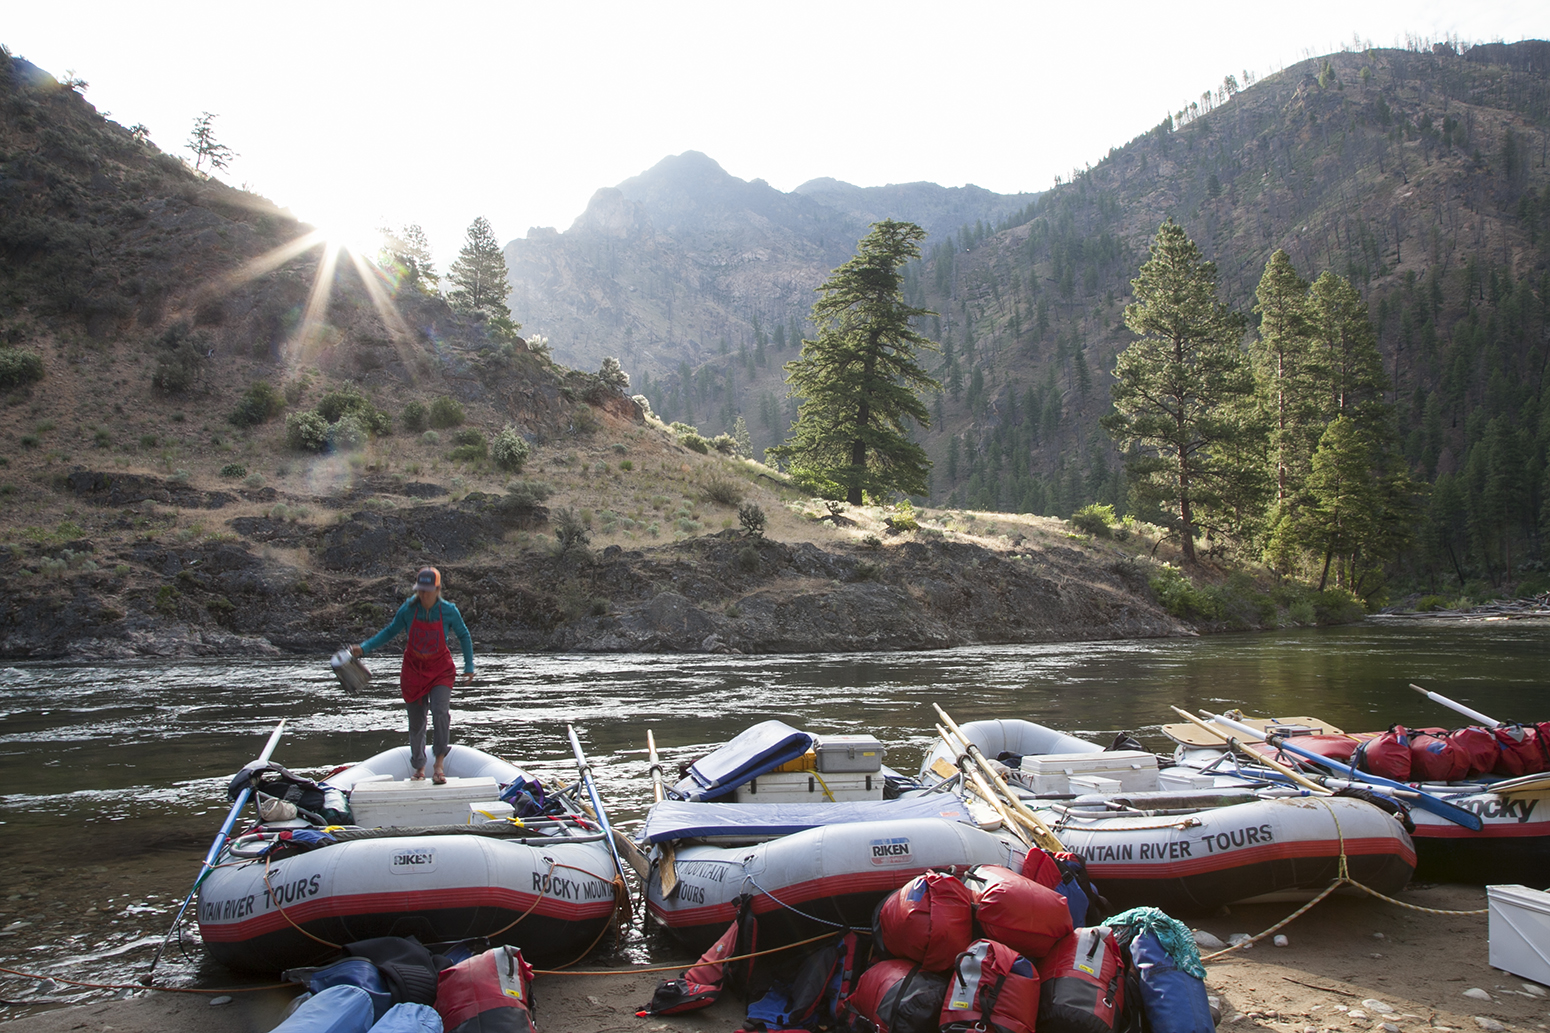 Daybreak at Whitie Cox Camp on the Middle Fork of the Salmon River 2014.